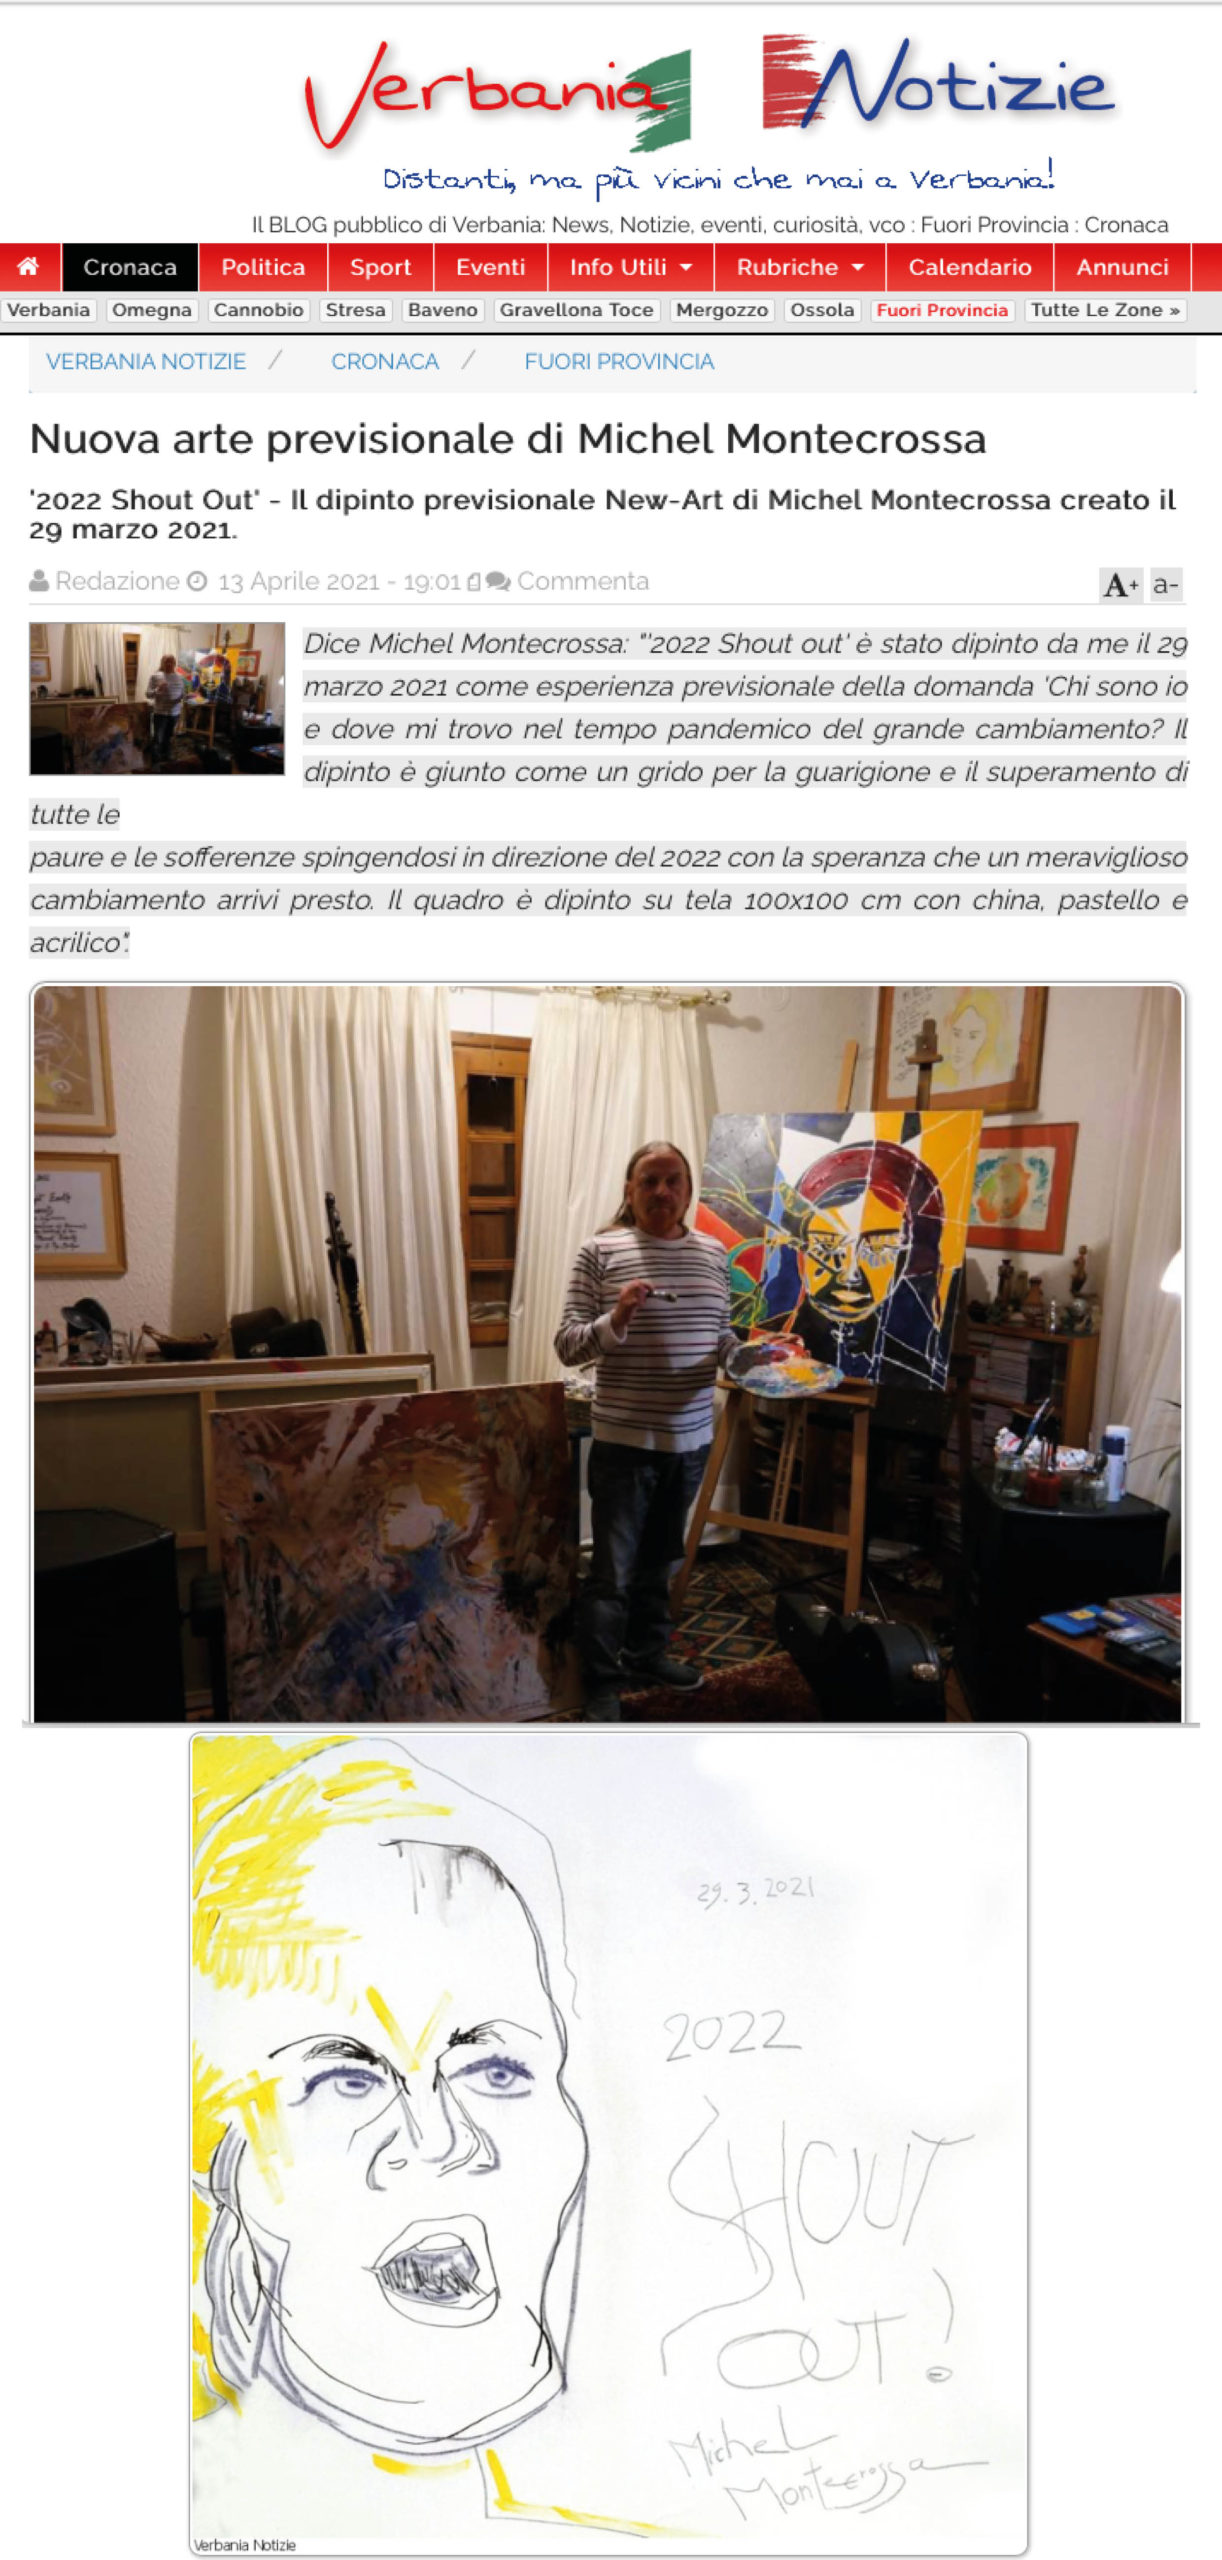 Italian Verbania Notizie on Michel Montecrossa's painting: '2022 Shout Out'